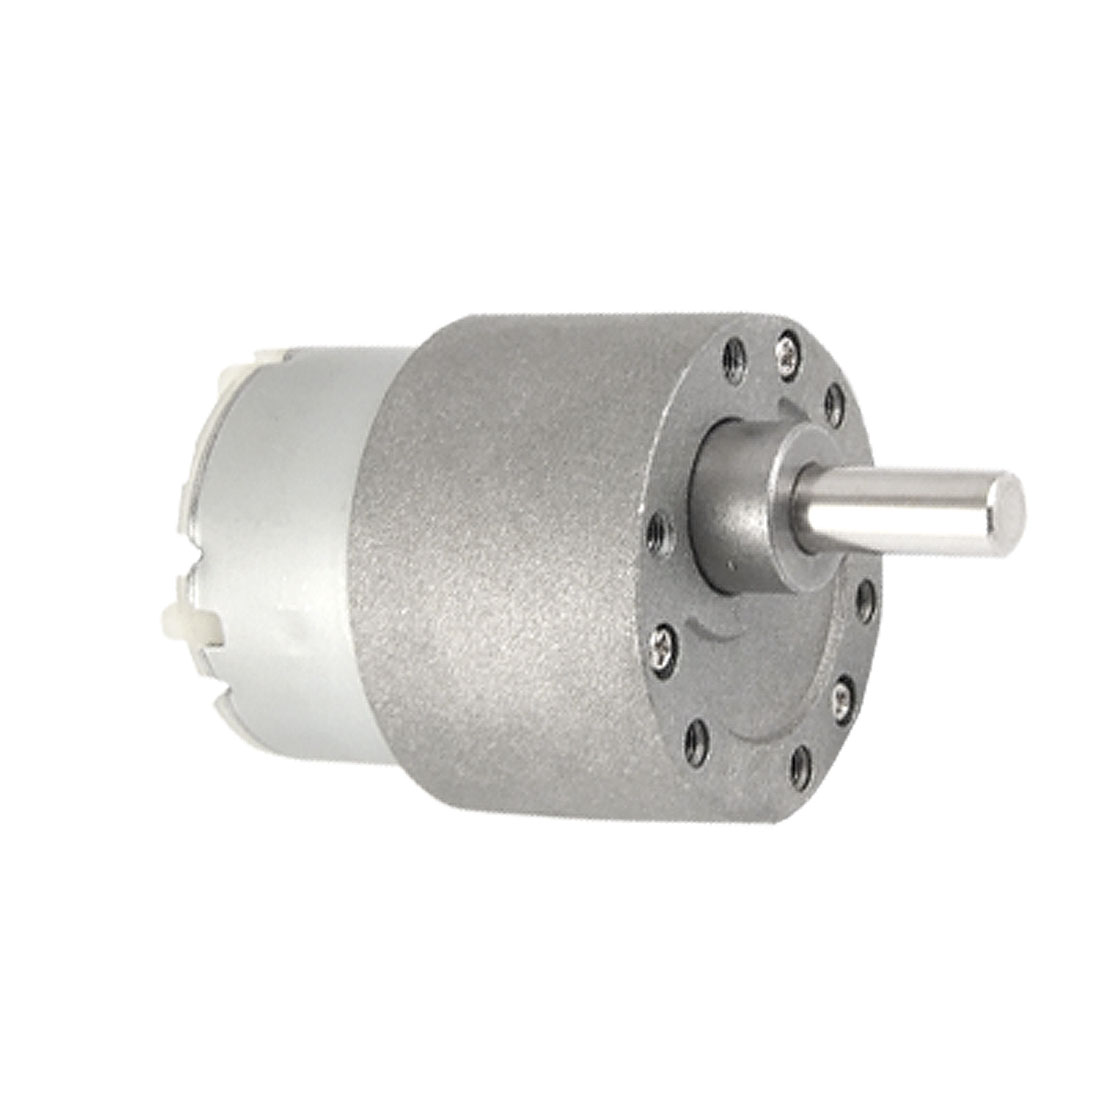 30RPM 37mm Diameter DC 6V 0.15A Speed Reducing Geared Motor